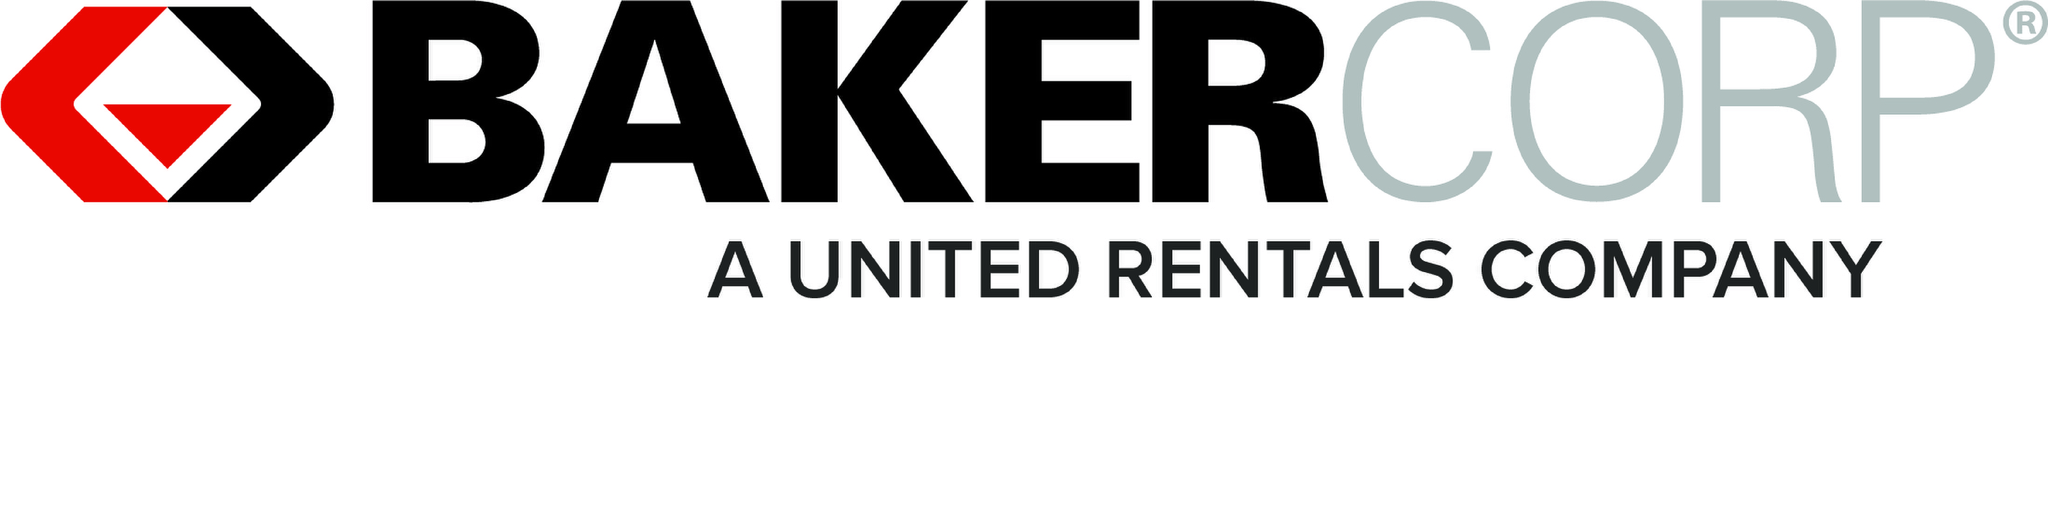 BAKER CORP / United Rentals